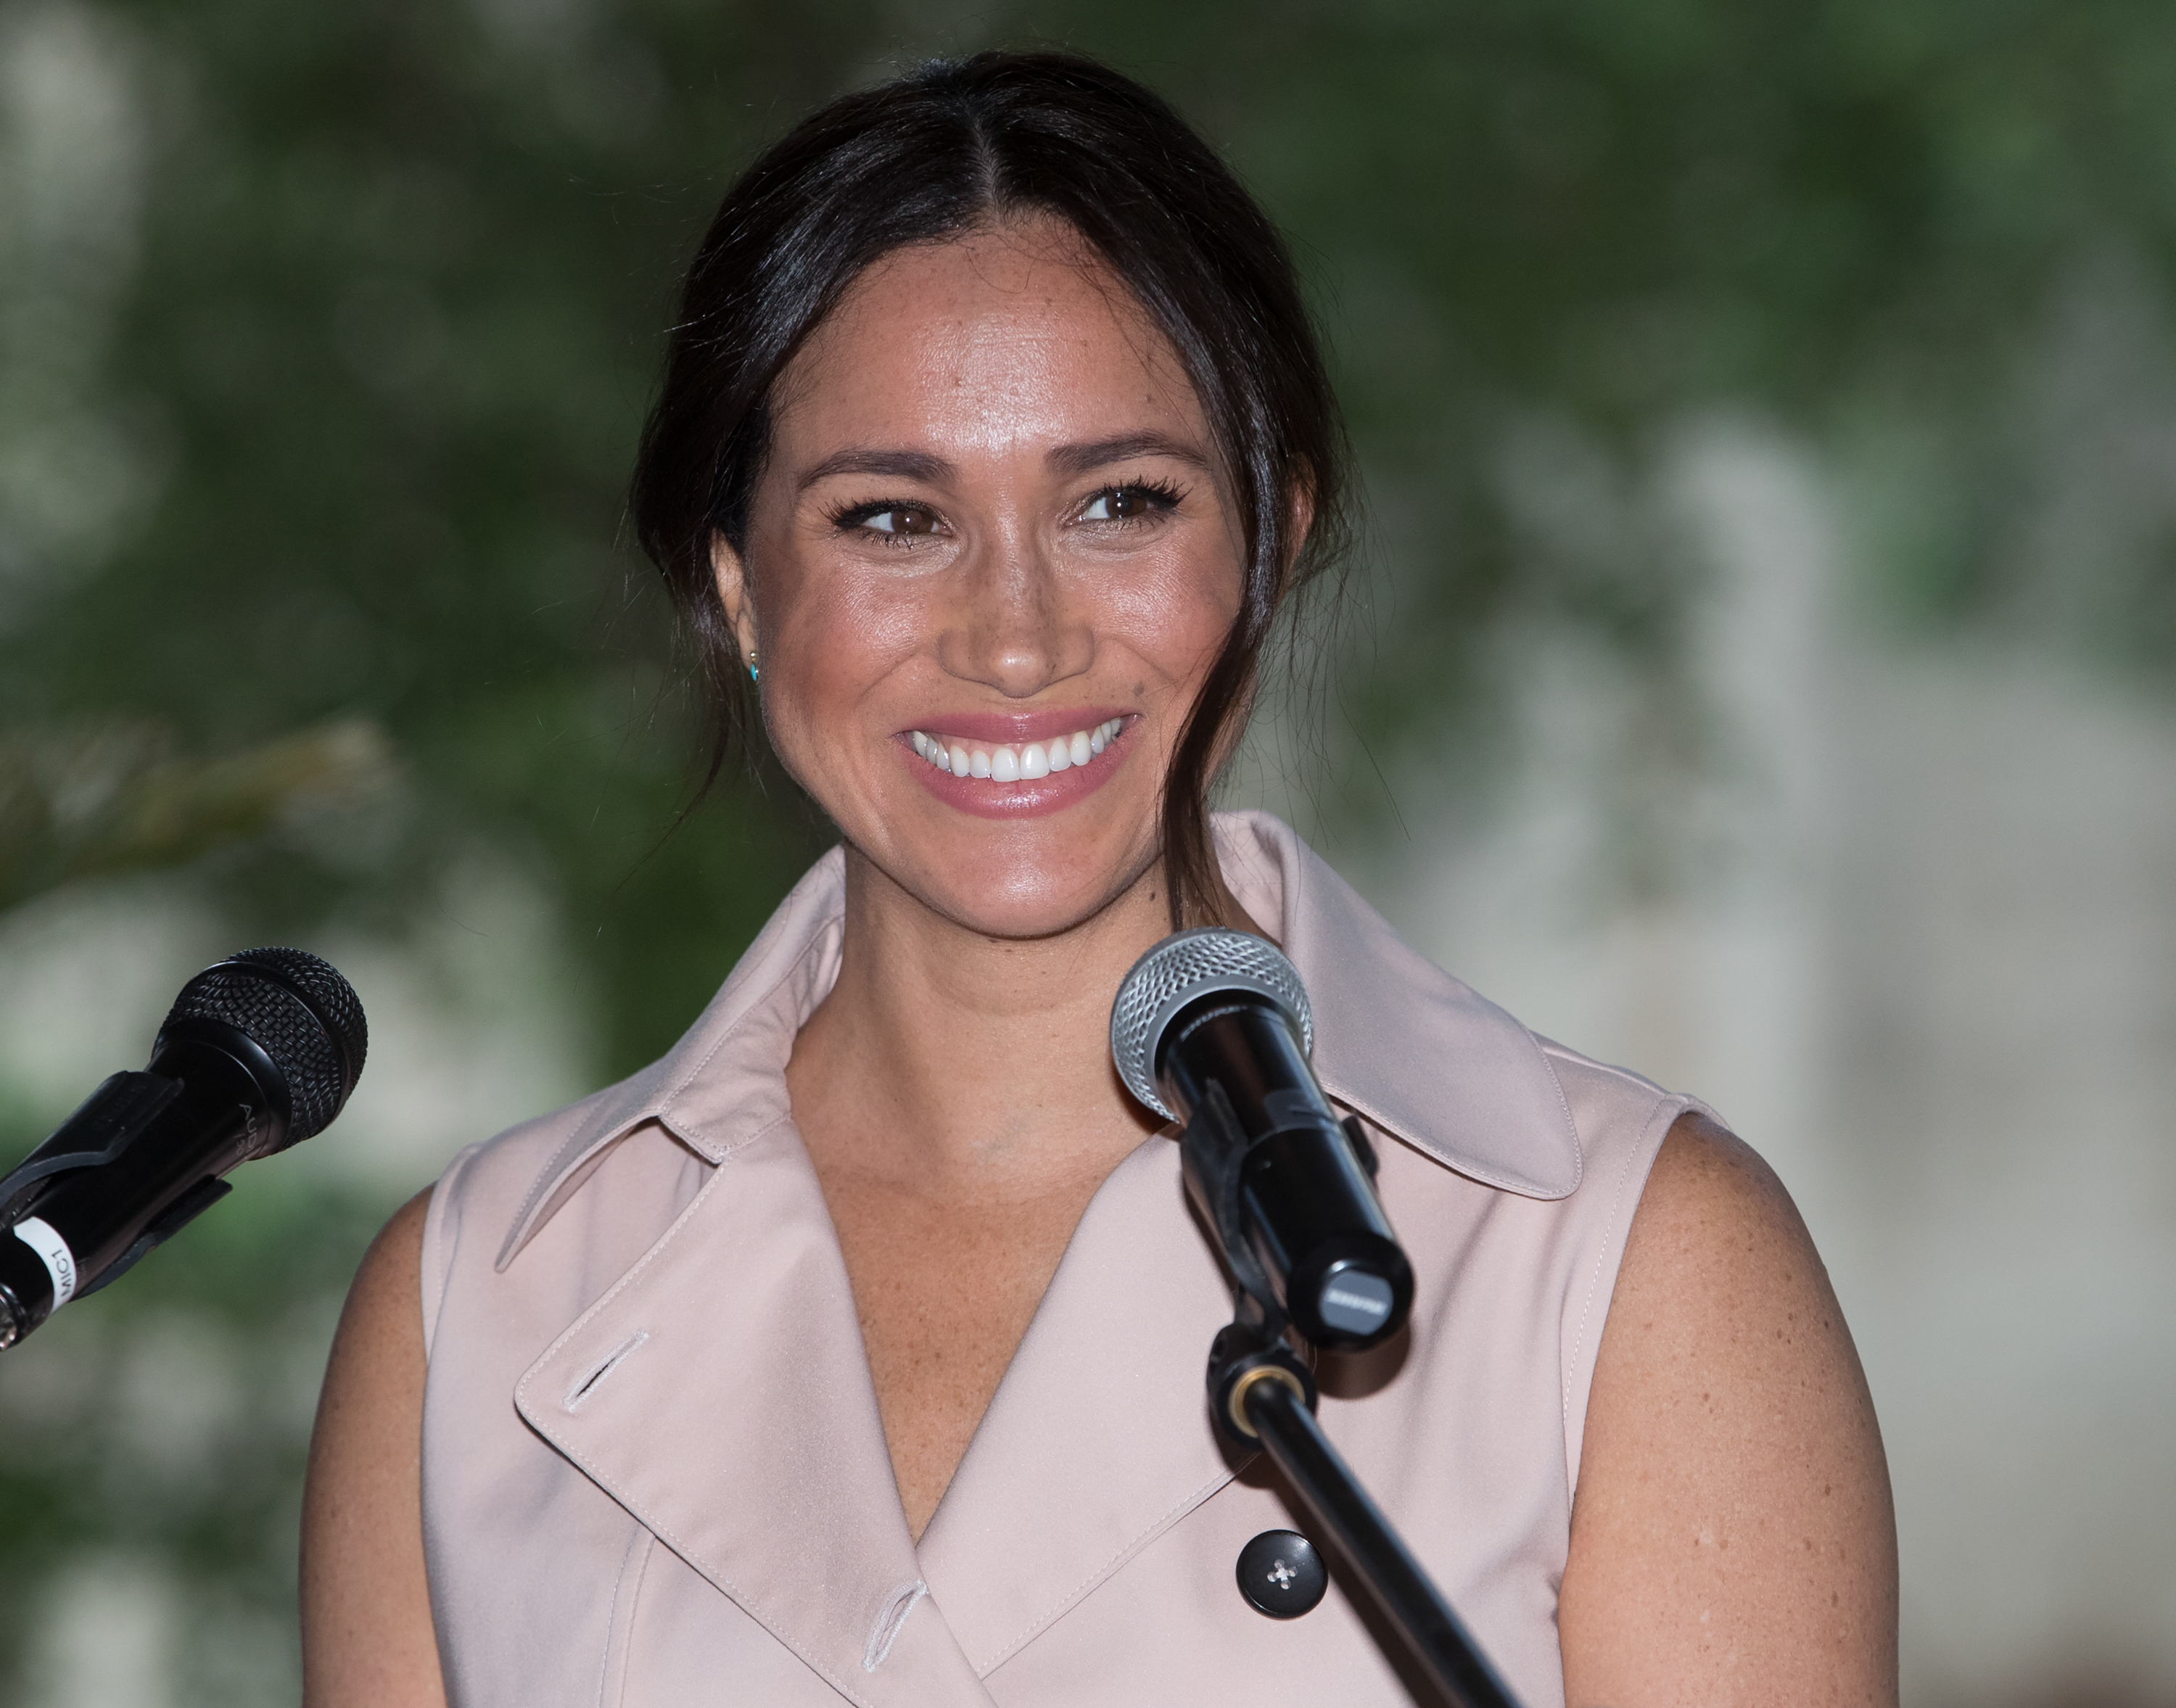 Meghan Markle Surprised a Women's Center in Vancouver - Woman's World